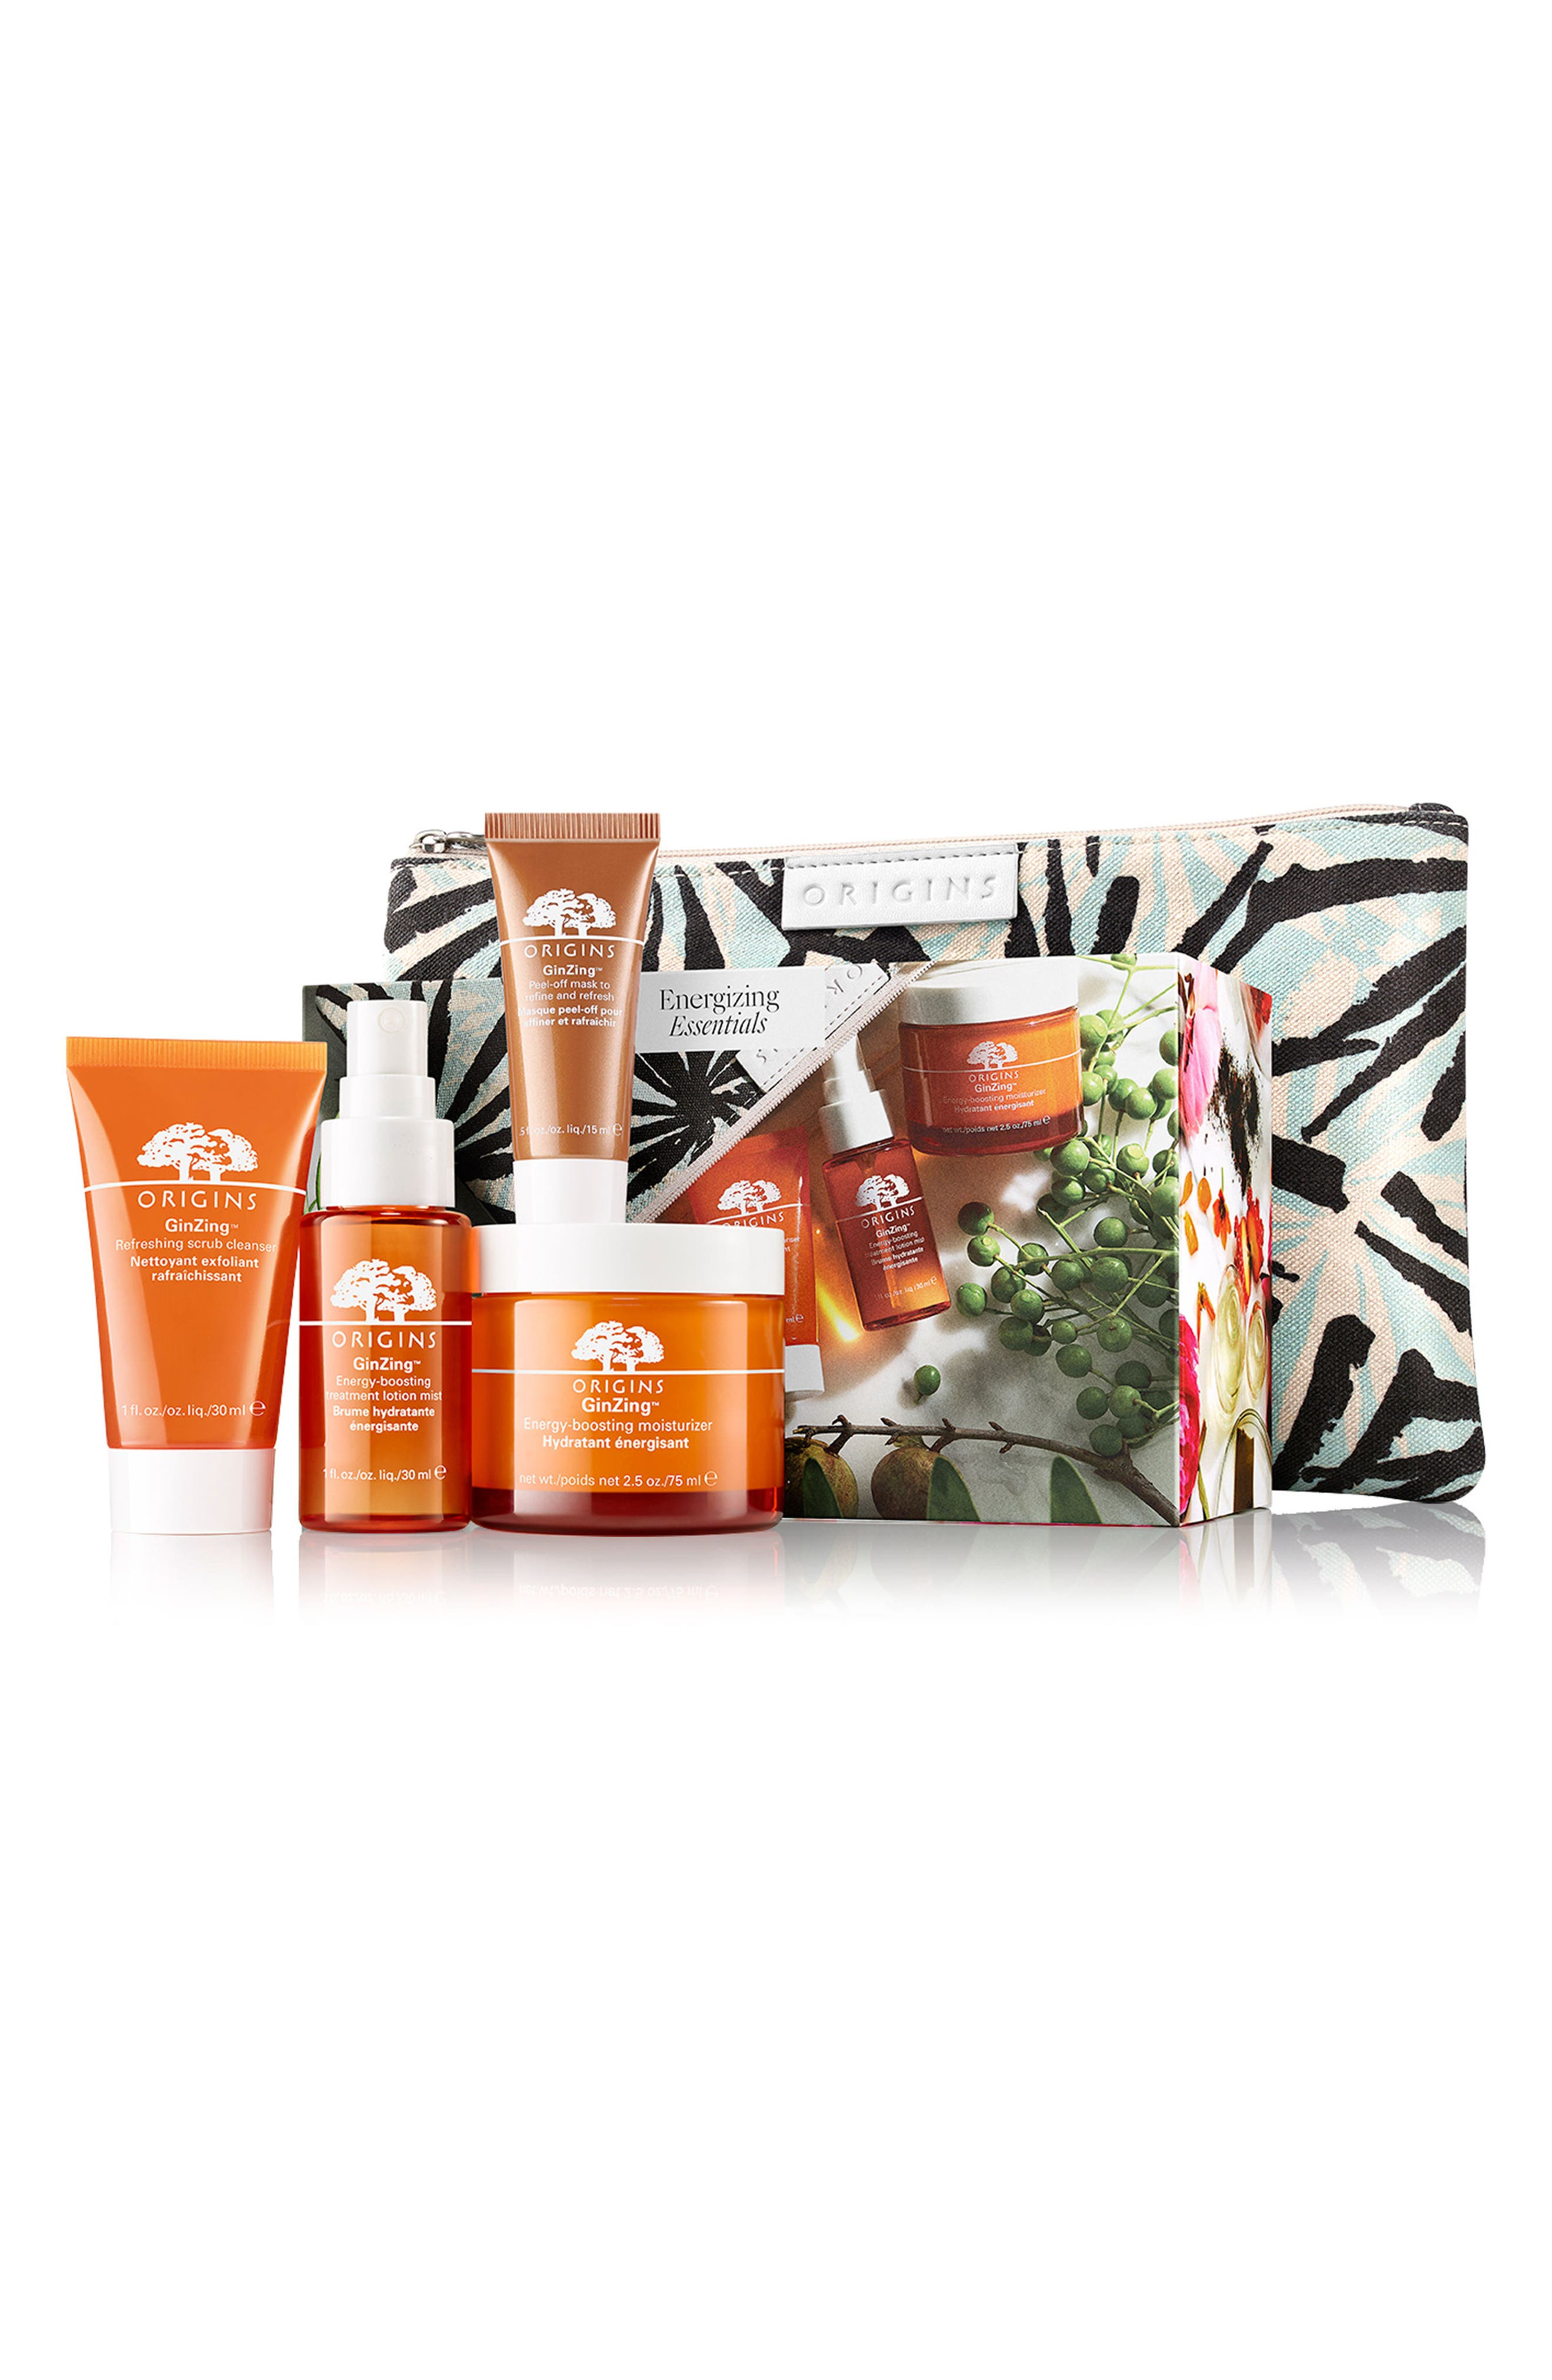 Origins Energizing Essentials Set ($54.50 Value)